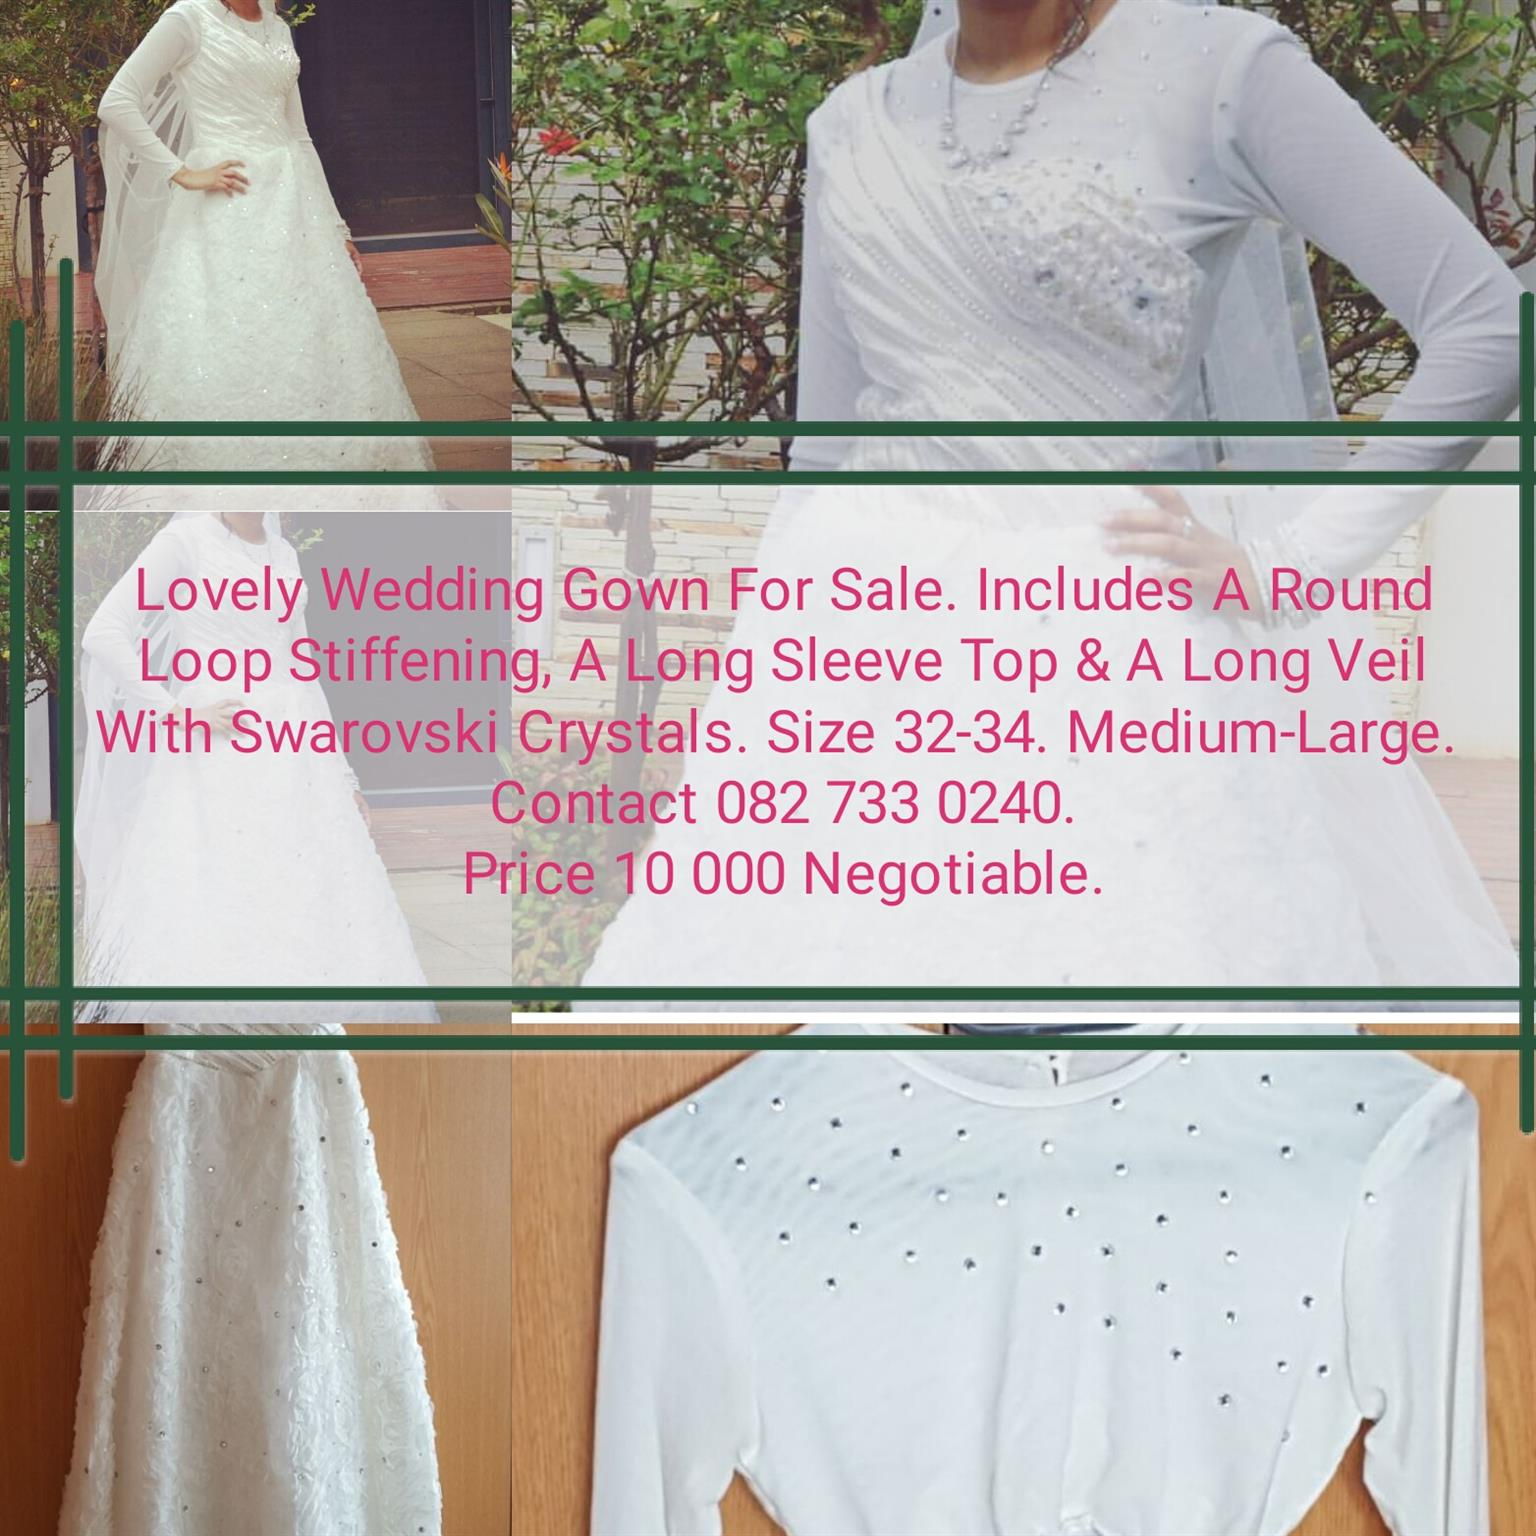 WEDDIN GOWN FOR SALE